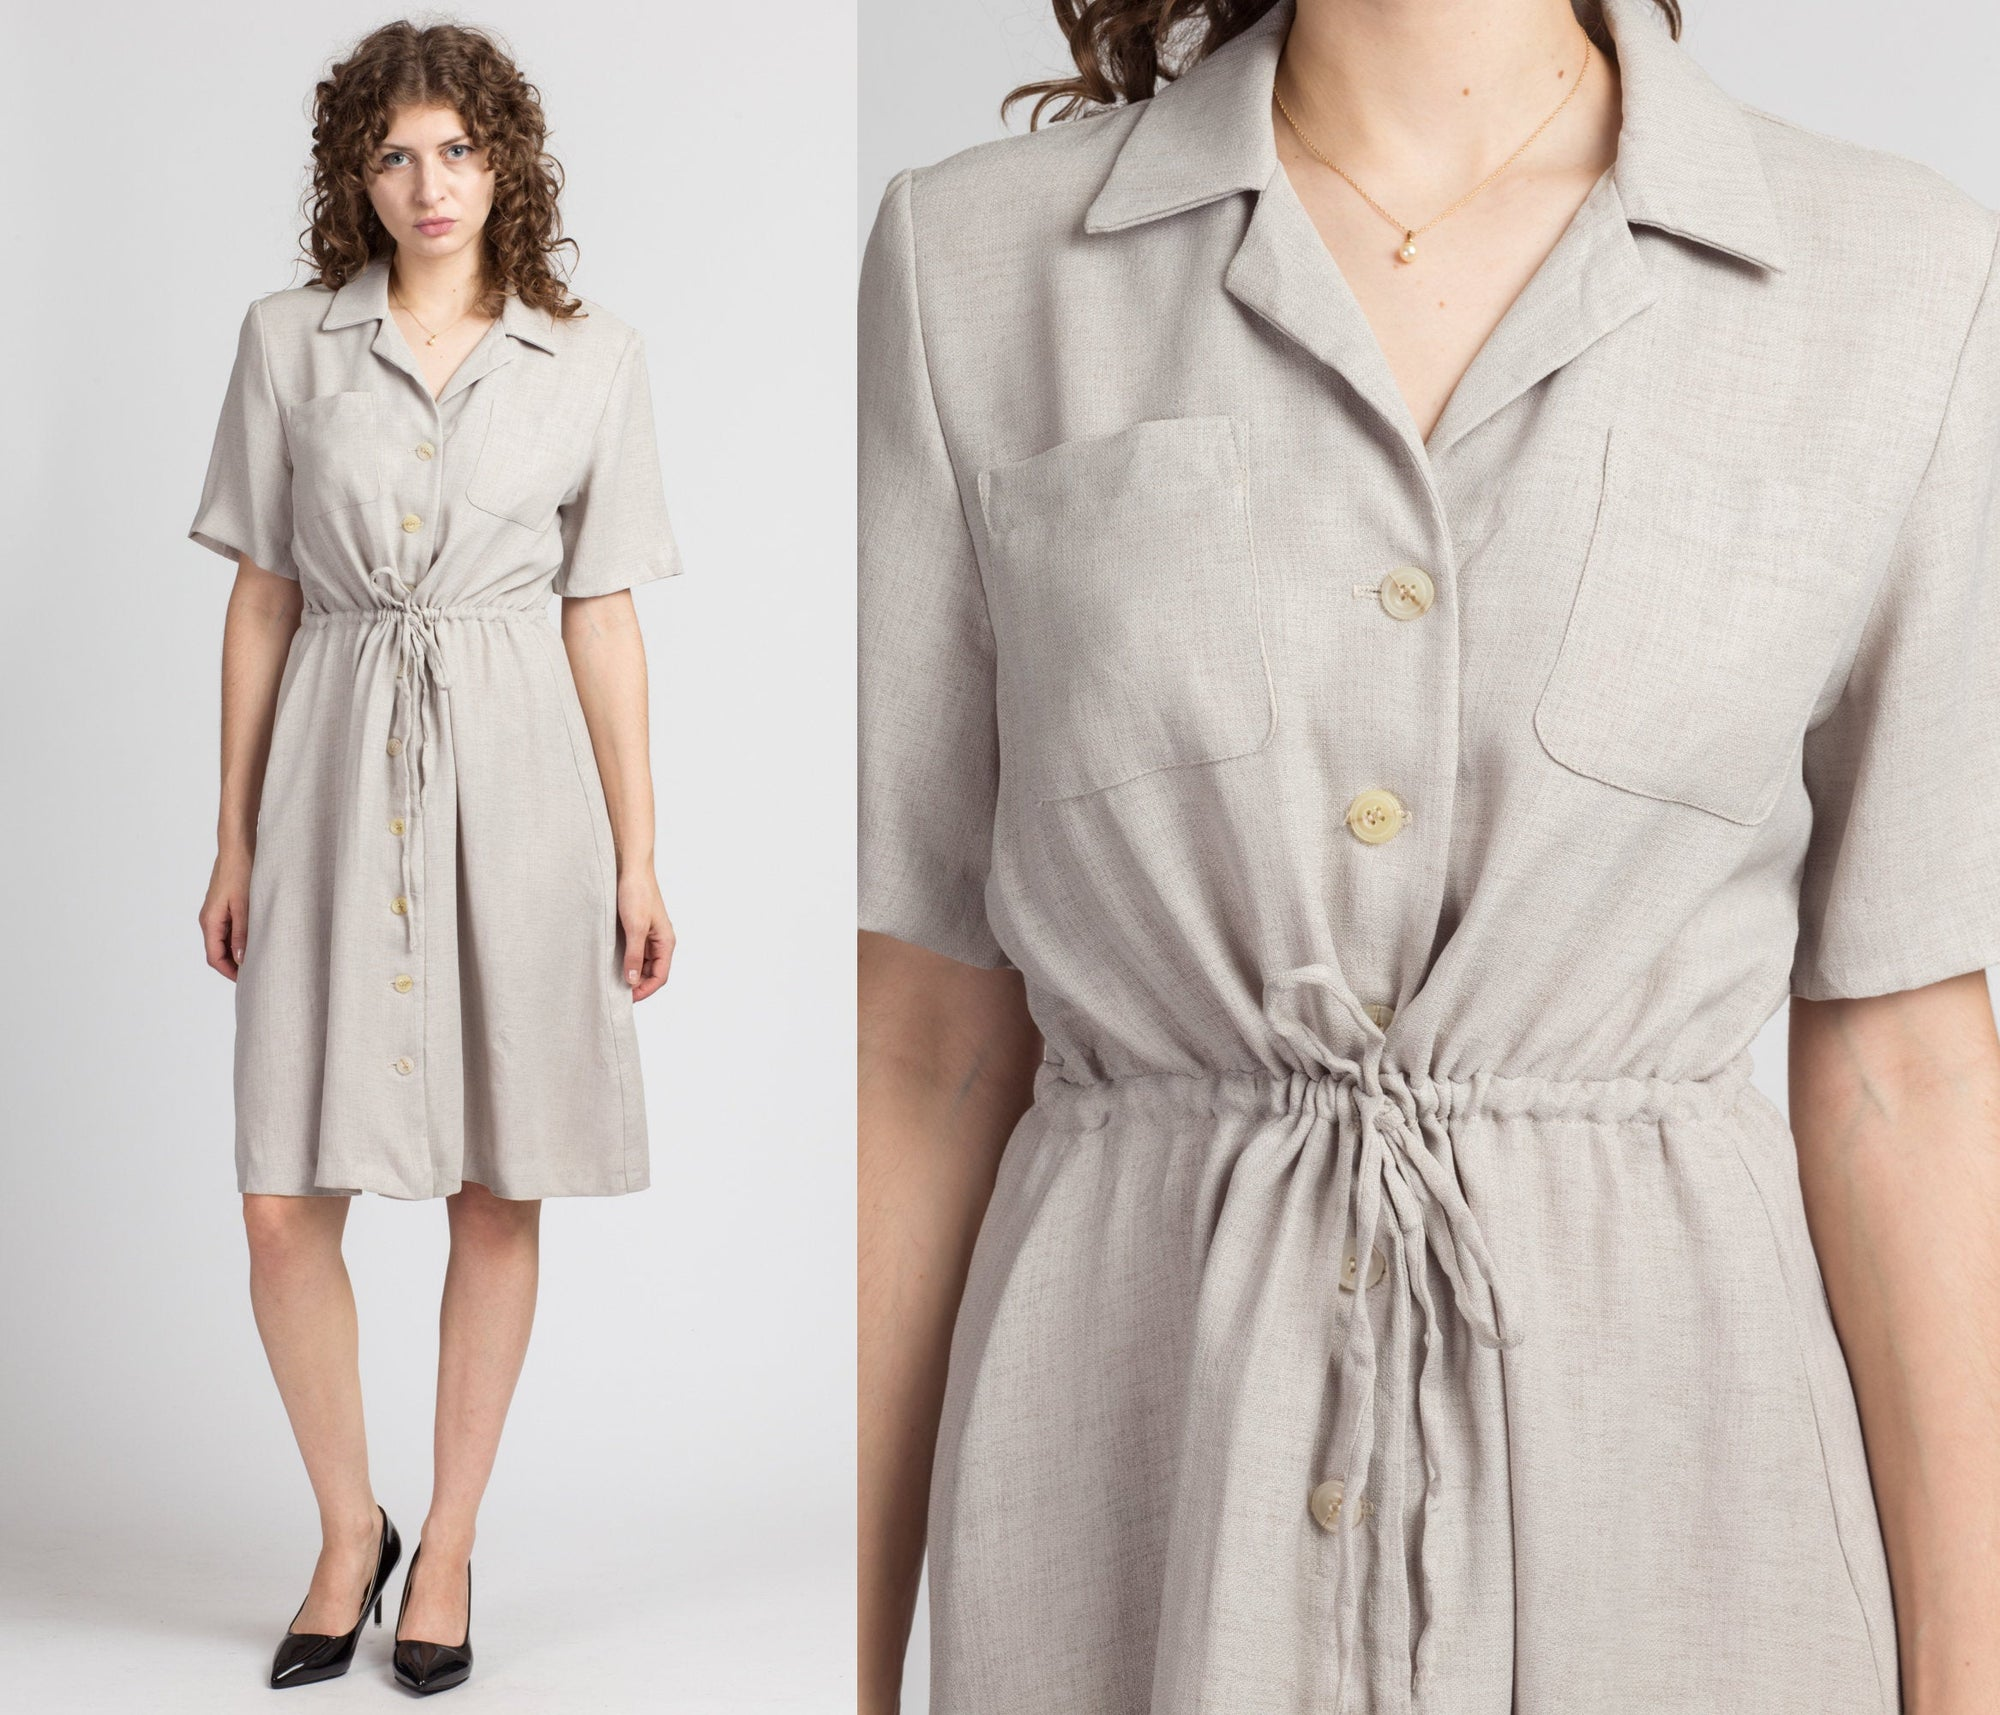 Vintage Ecru Collared Shirt Dress - Medium to Large